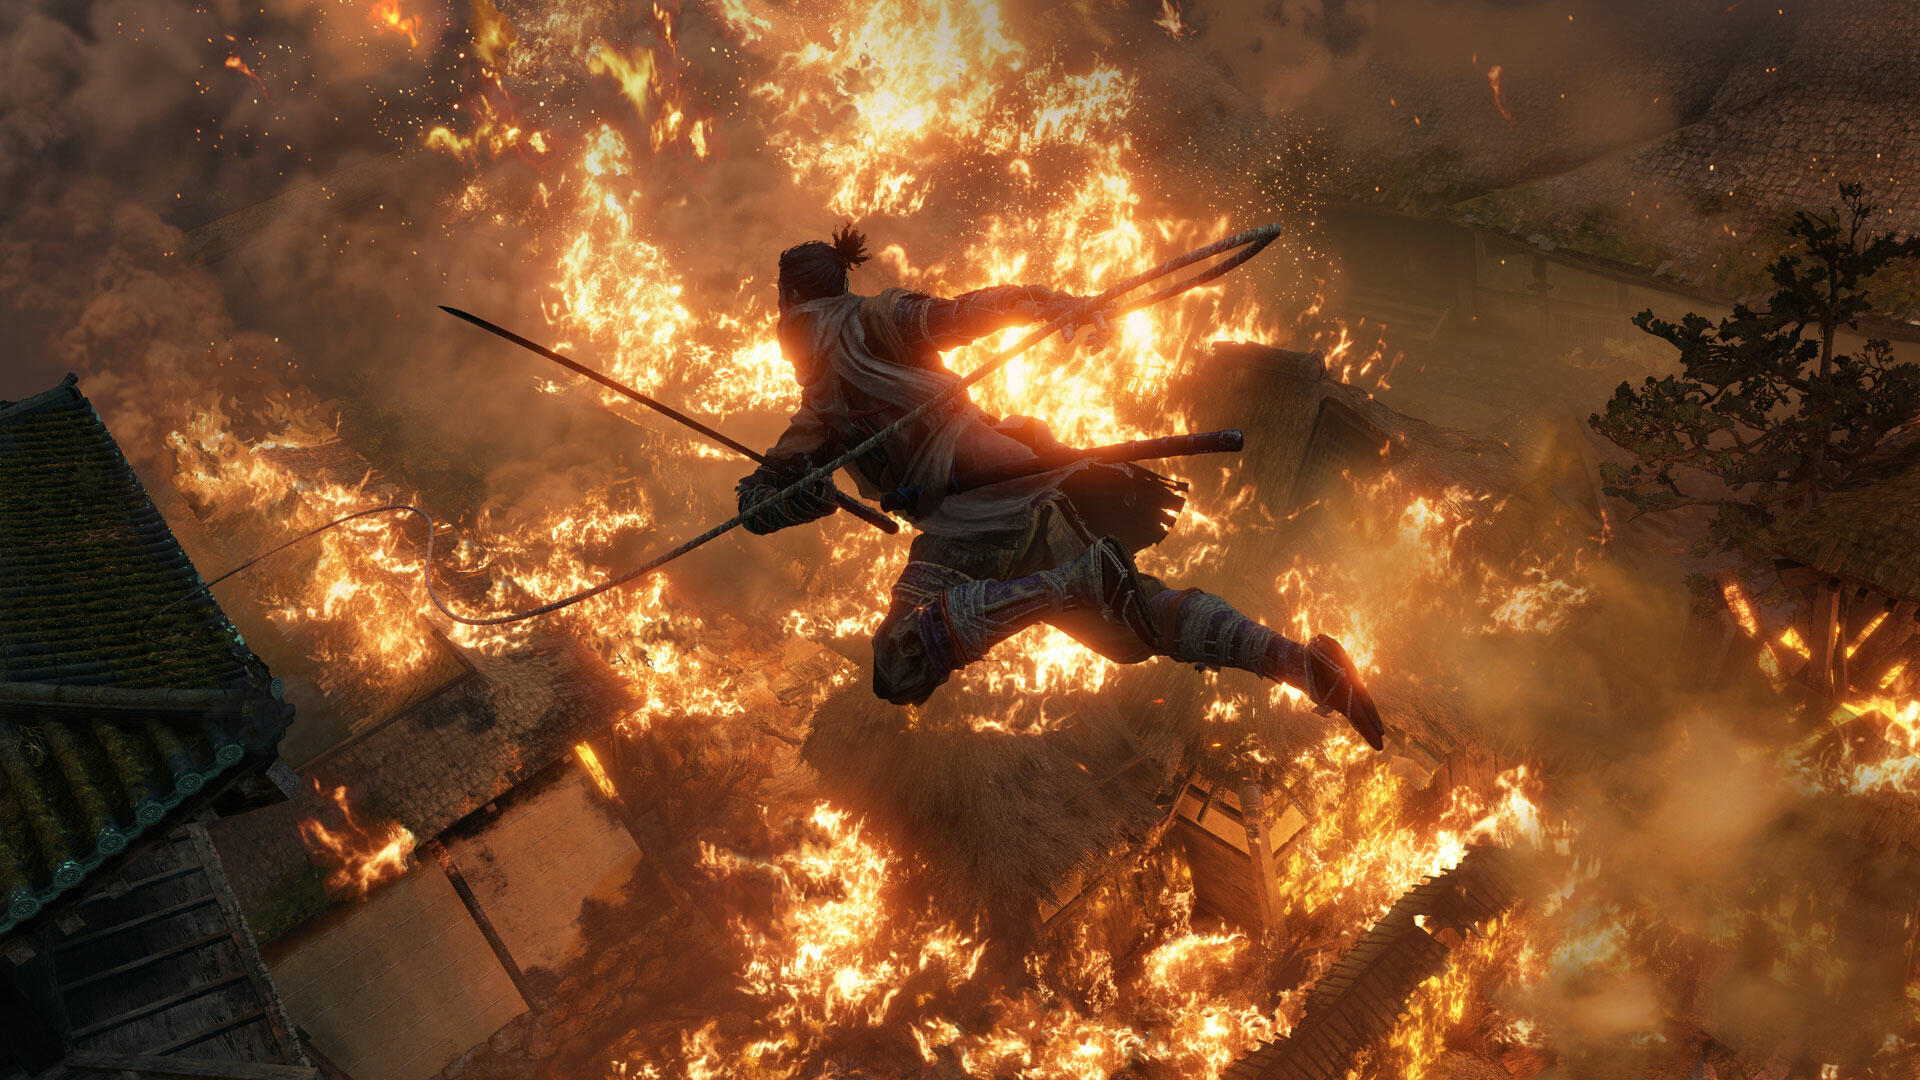 Sekiro Review Roundup, Release Date, Trophy List, PC Specs